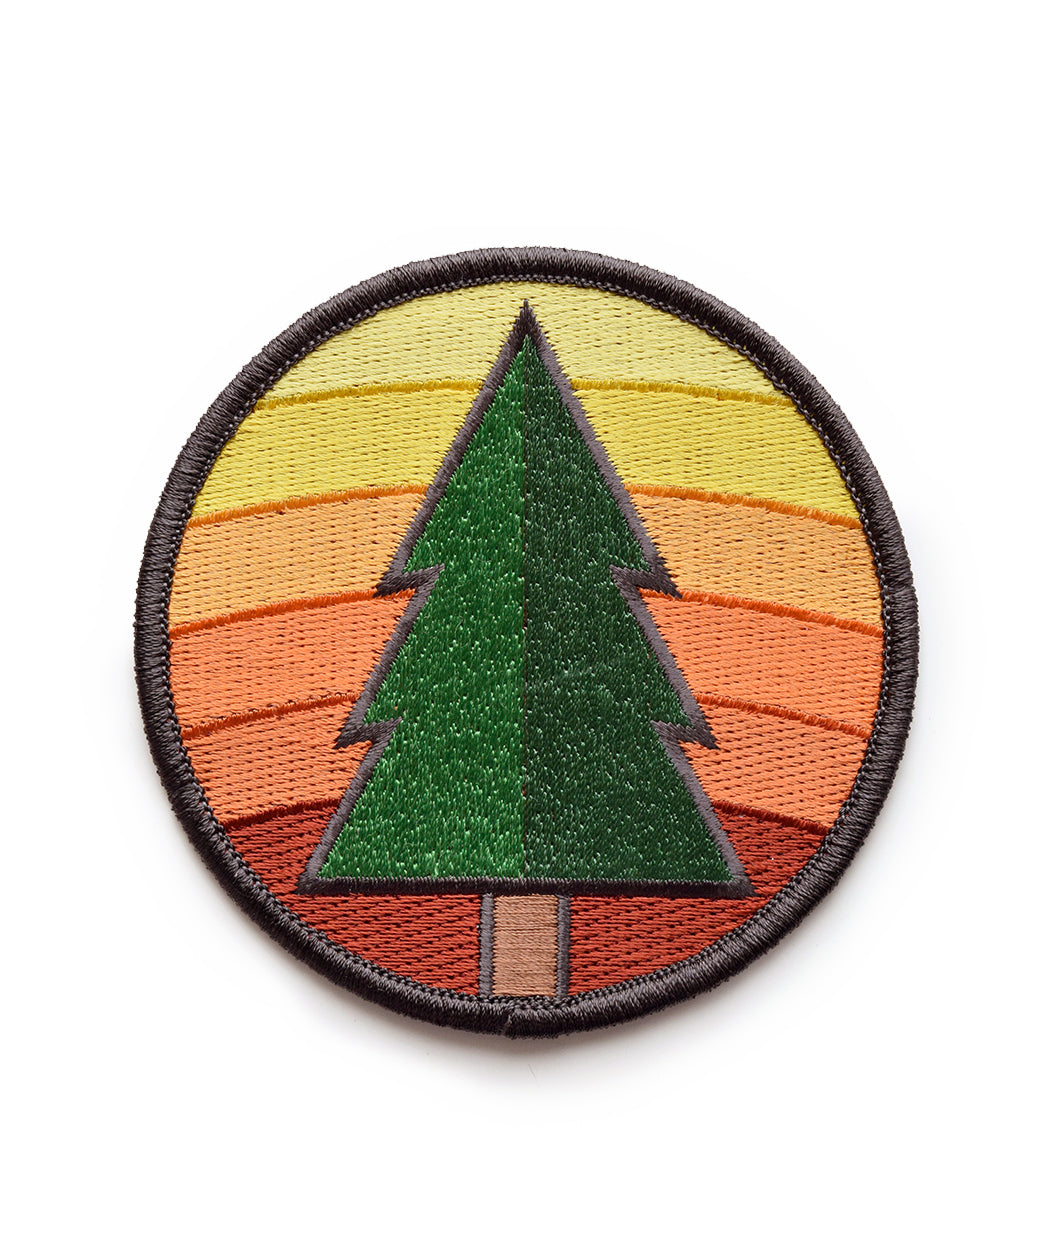 Pineguard Patch